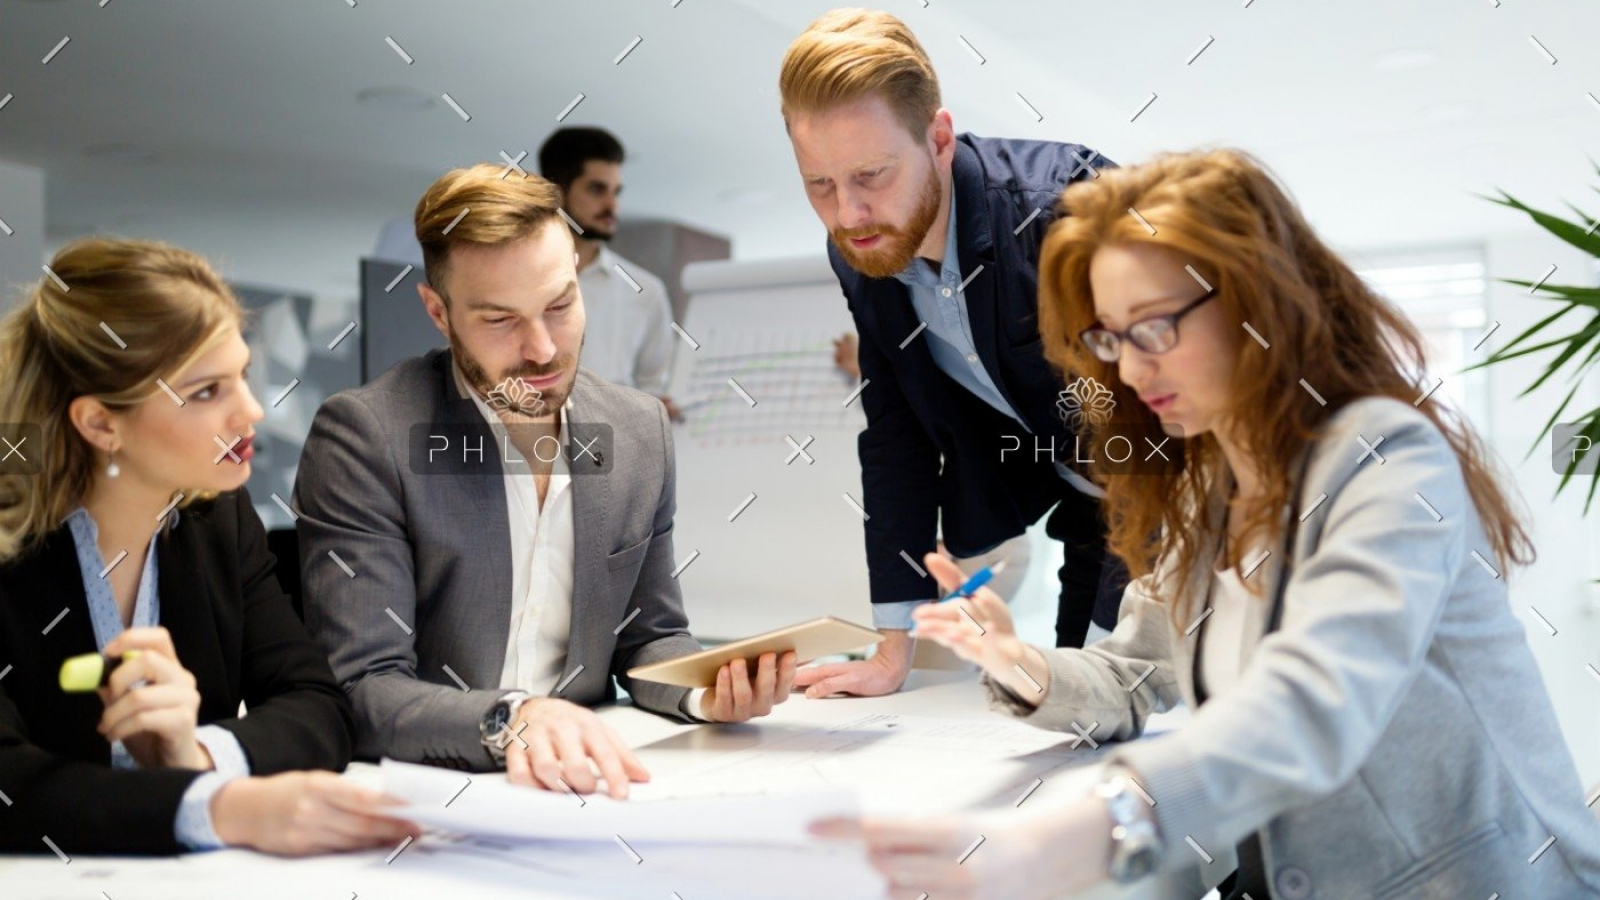 demo-attachment-1478-business-people-working-together-on-project-and-B3MZ4TX